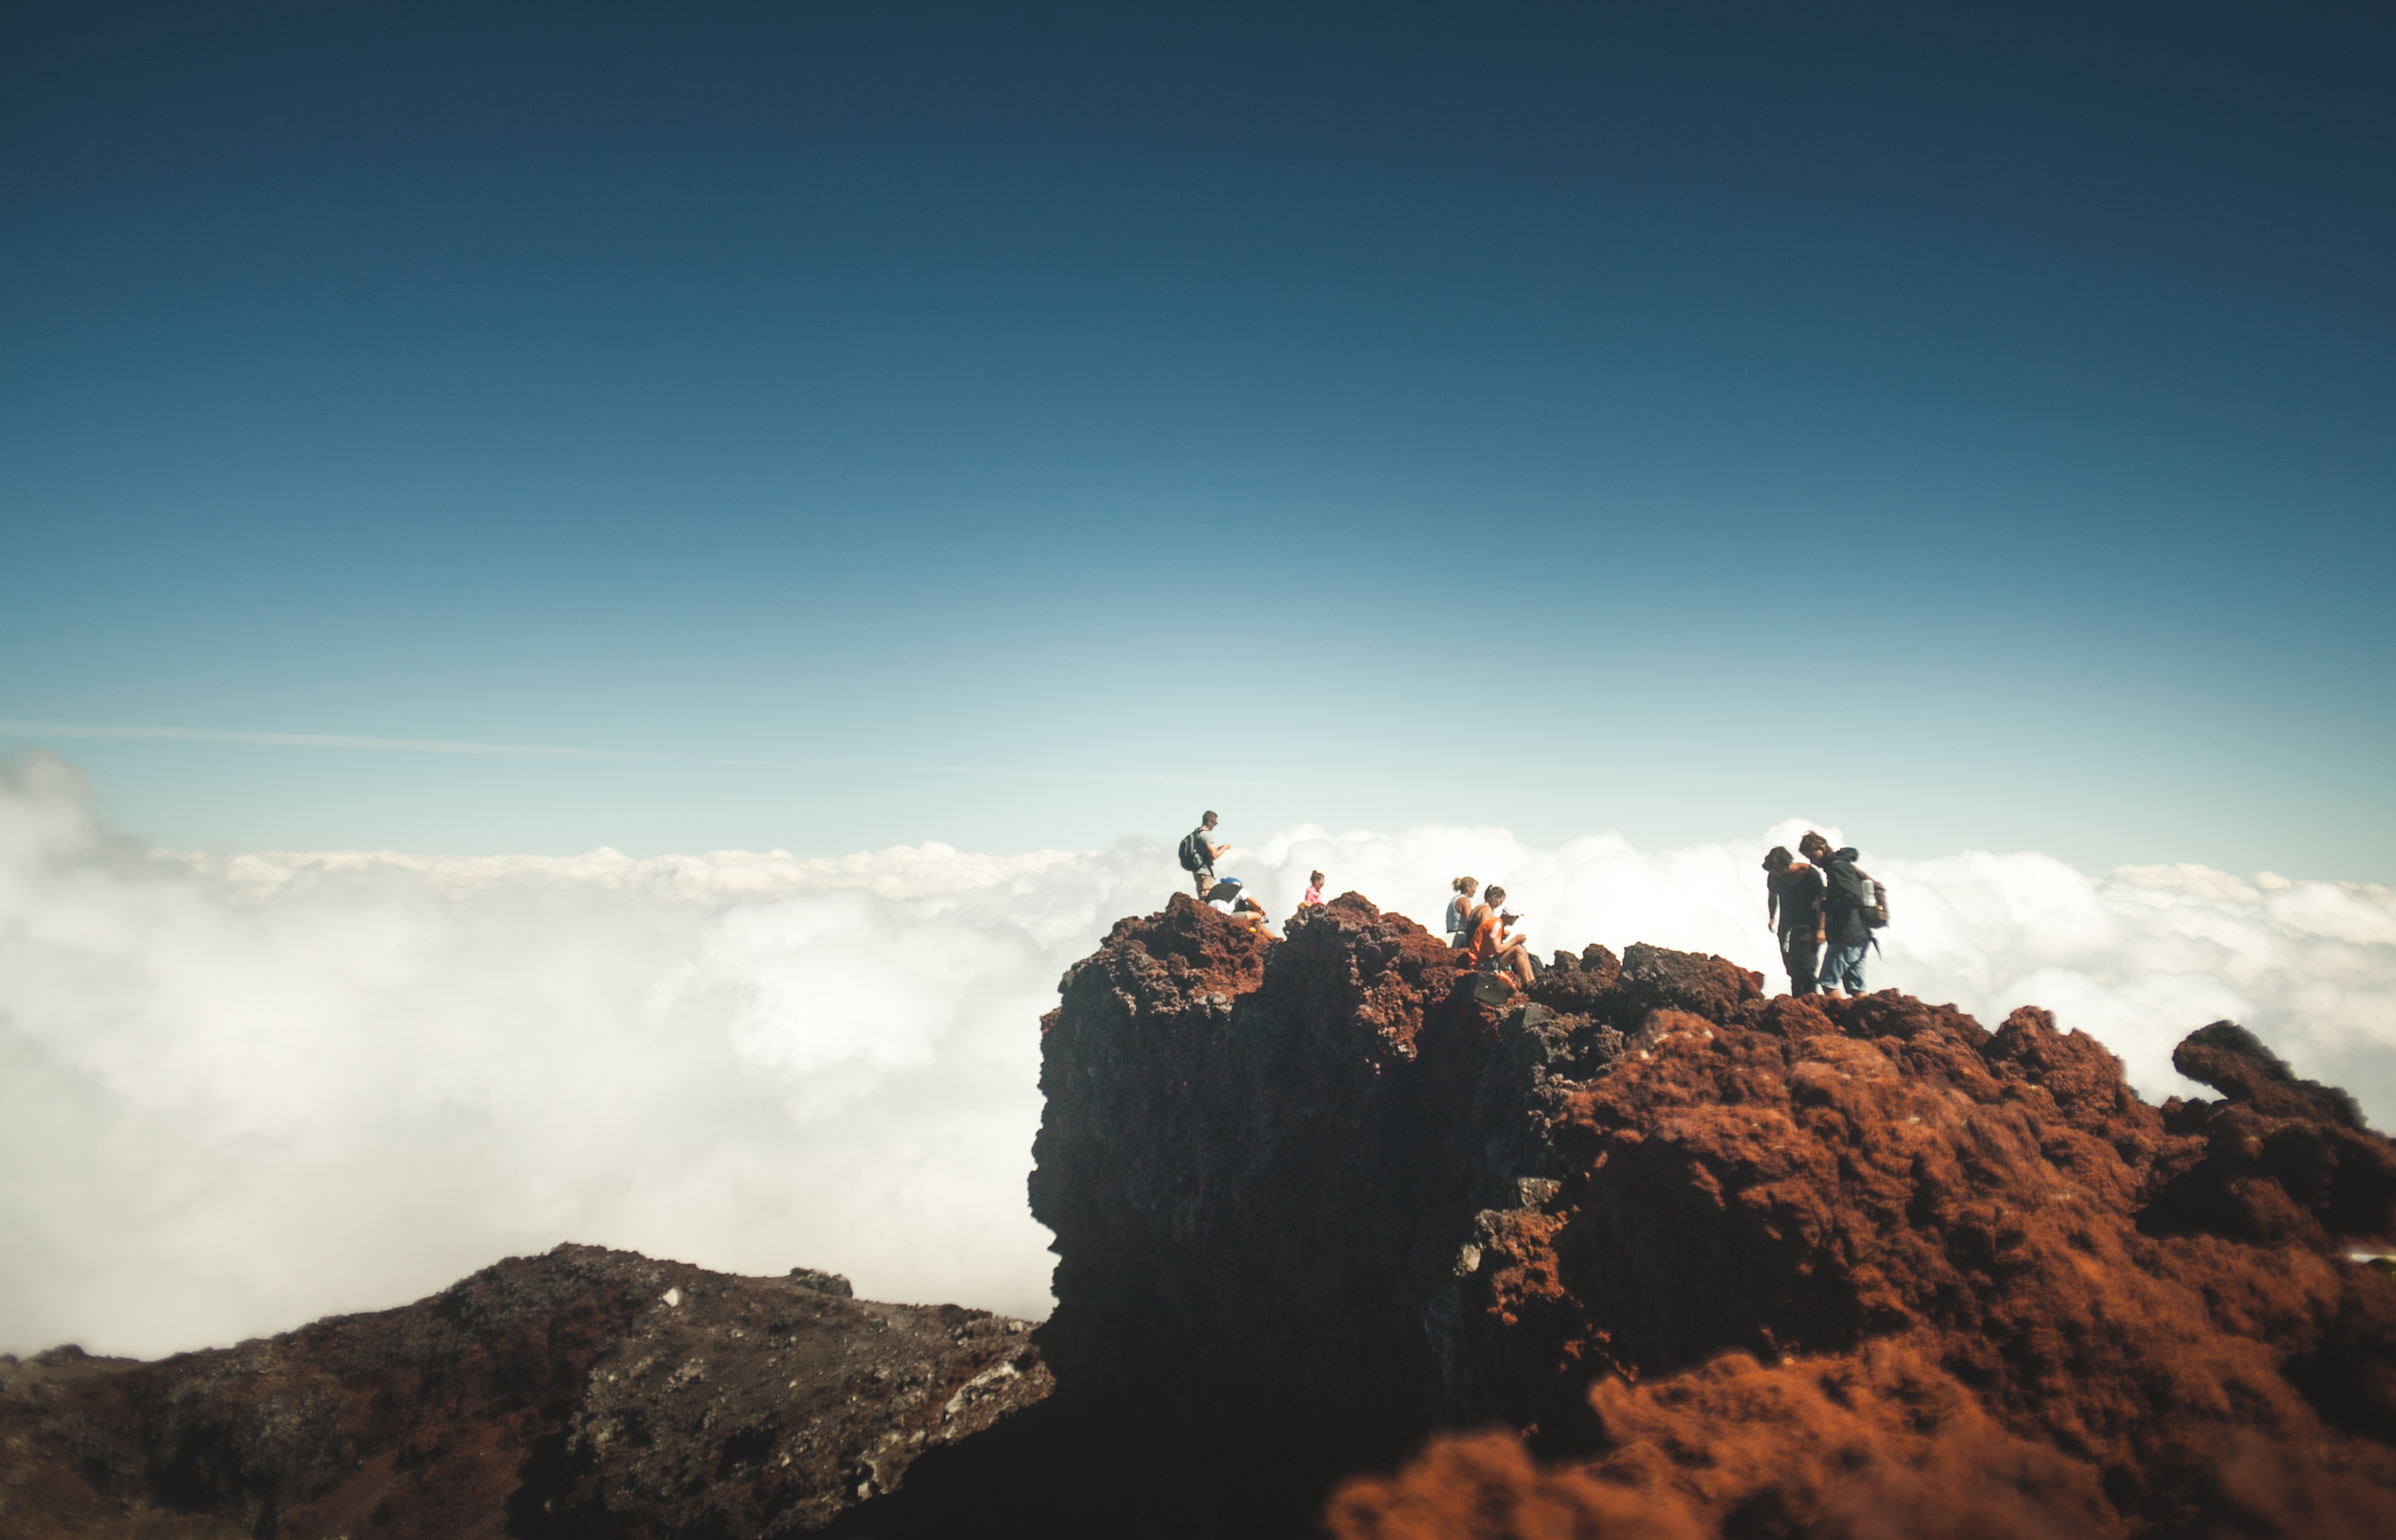 Camaraderie above the clouds.